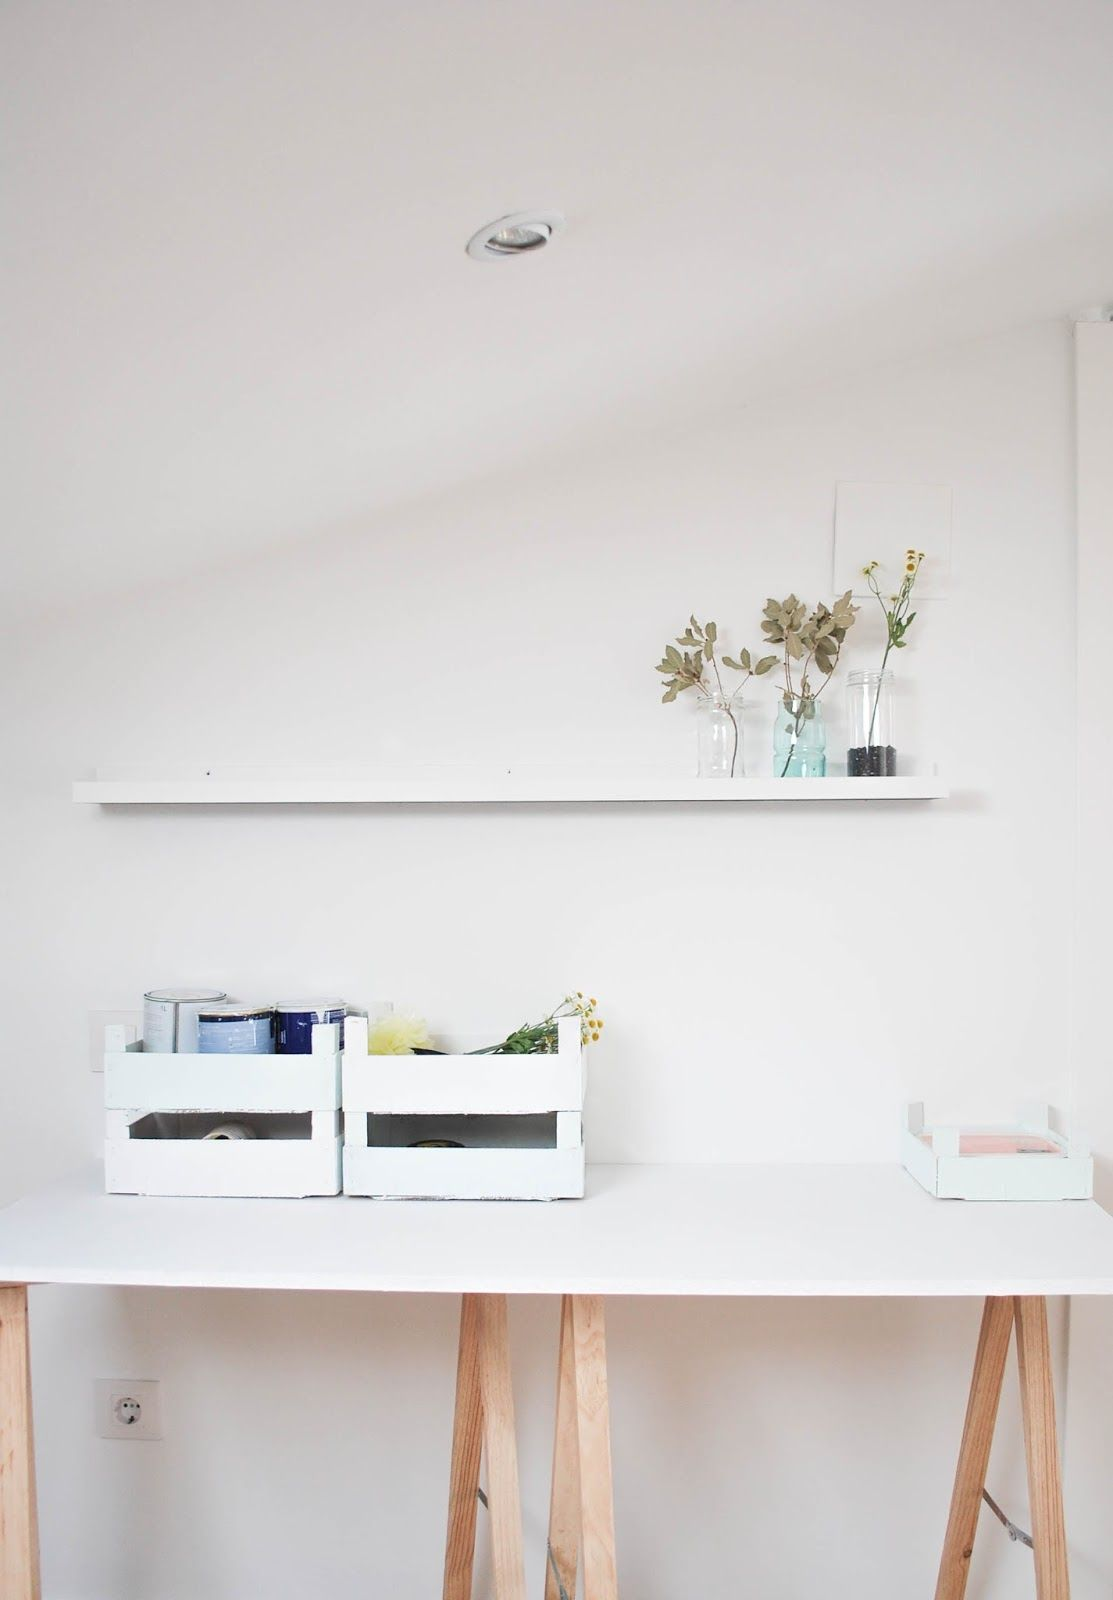 MY HOME: Mi taller nórdico paso a paso I http://www.mylittlebrunch.com/2014/05/my-home-mi-taller-nordico-paso-paso-i.html #workplace #scandinavianstyle #myhome #lugardetrabajo